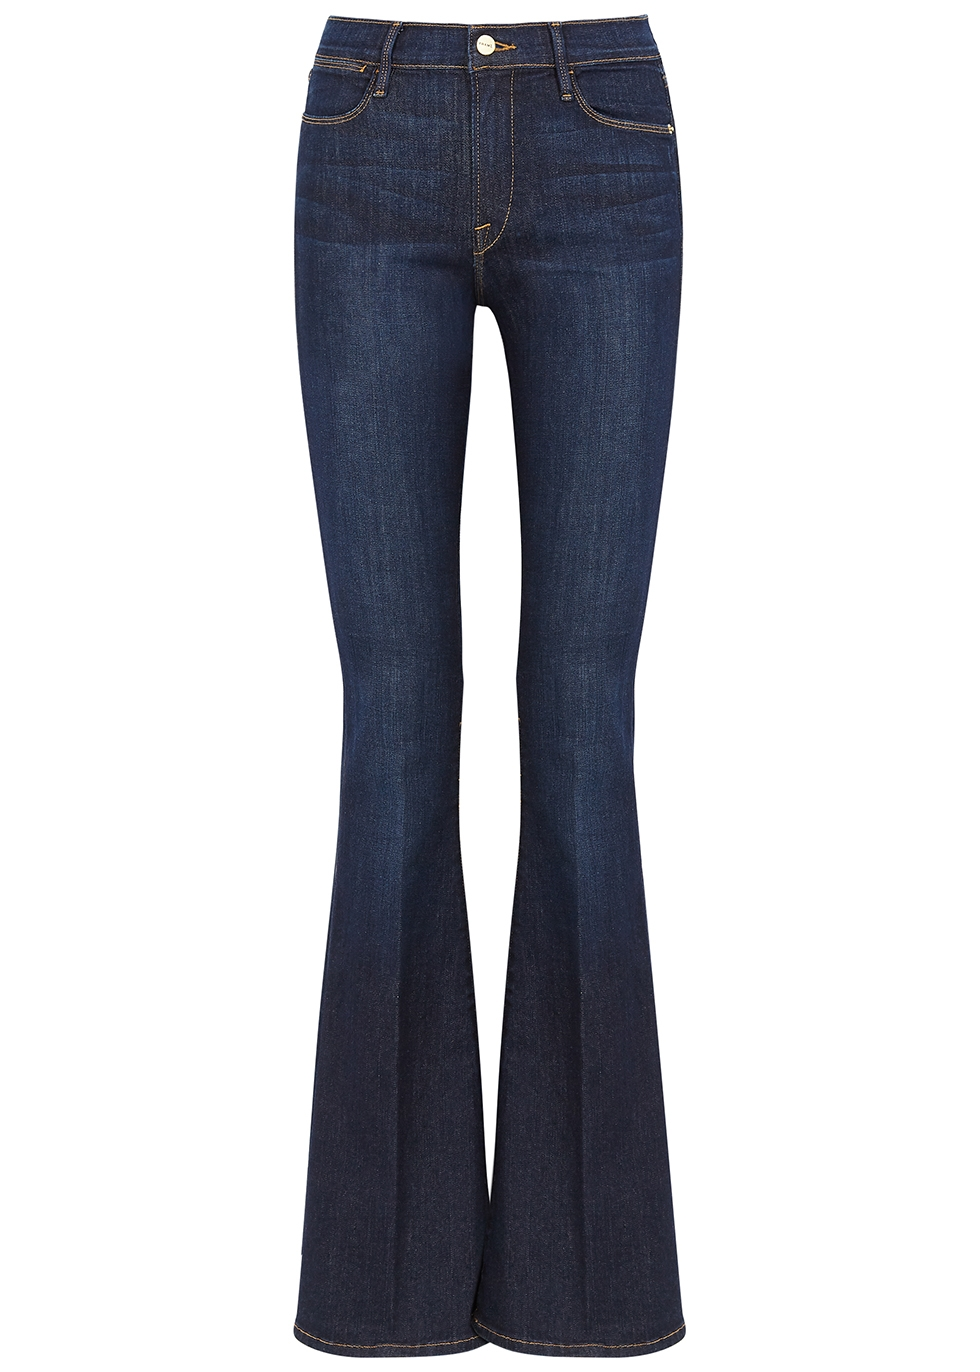 Le High Flare dark blue jeans